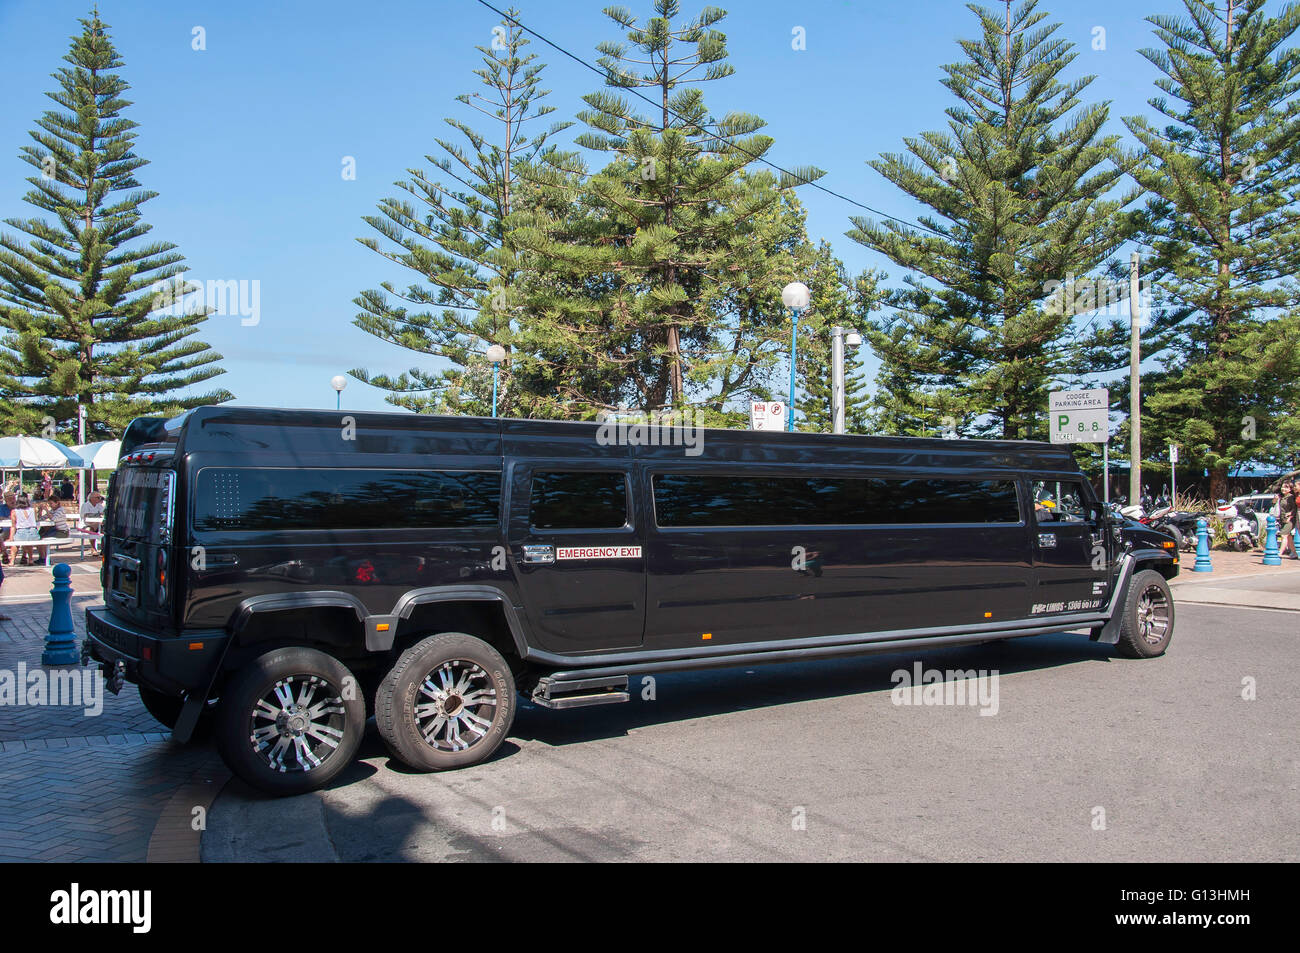 H2 Hummer stretch limousine at Coogee Beach, Coogee, Sydney, New South Wales, Australia - Stock Image